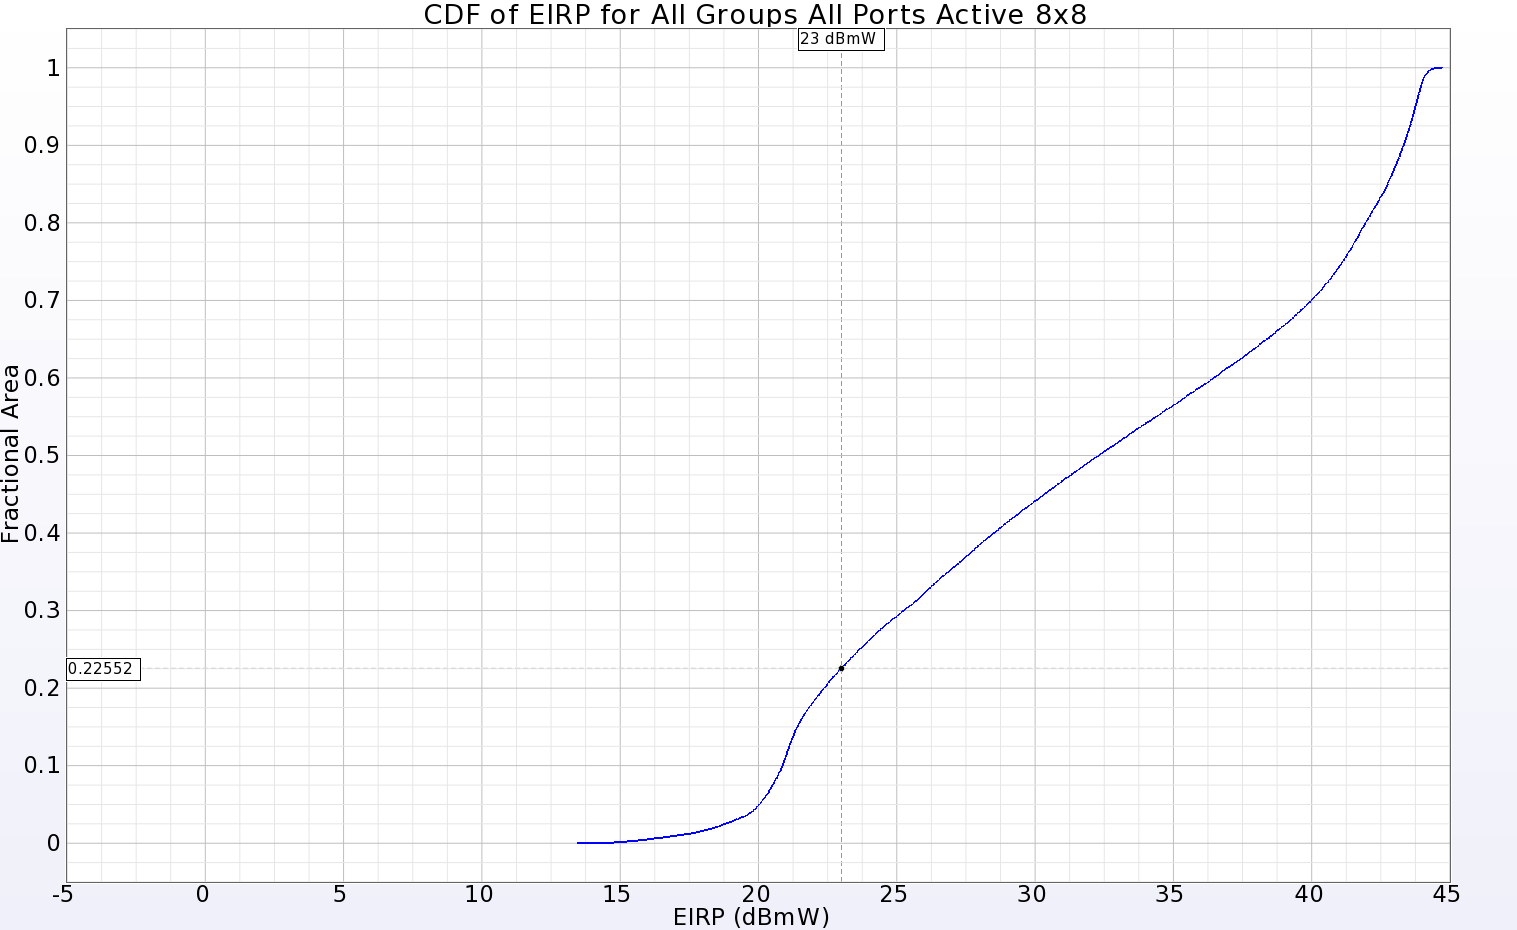 Figure 11: The CDF of EIRP plot for the full 8x8 array shows positive gain over 77.5% of the far-zone sphere for an input power of 23 dBmW.